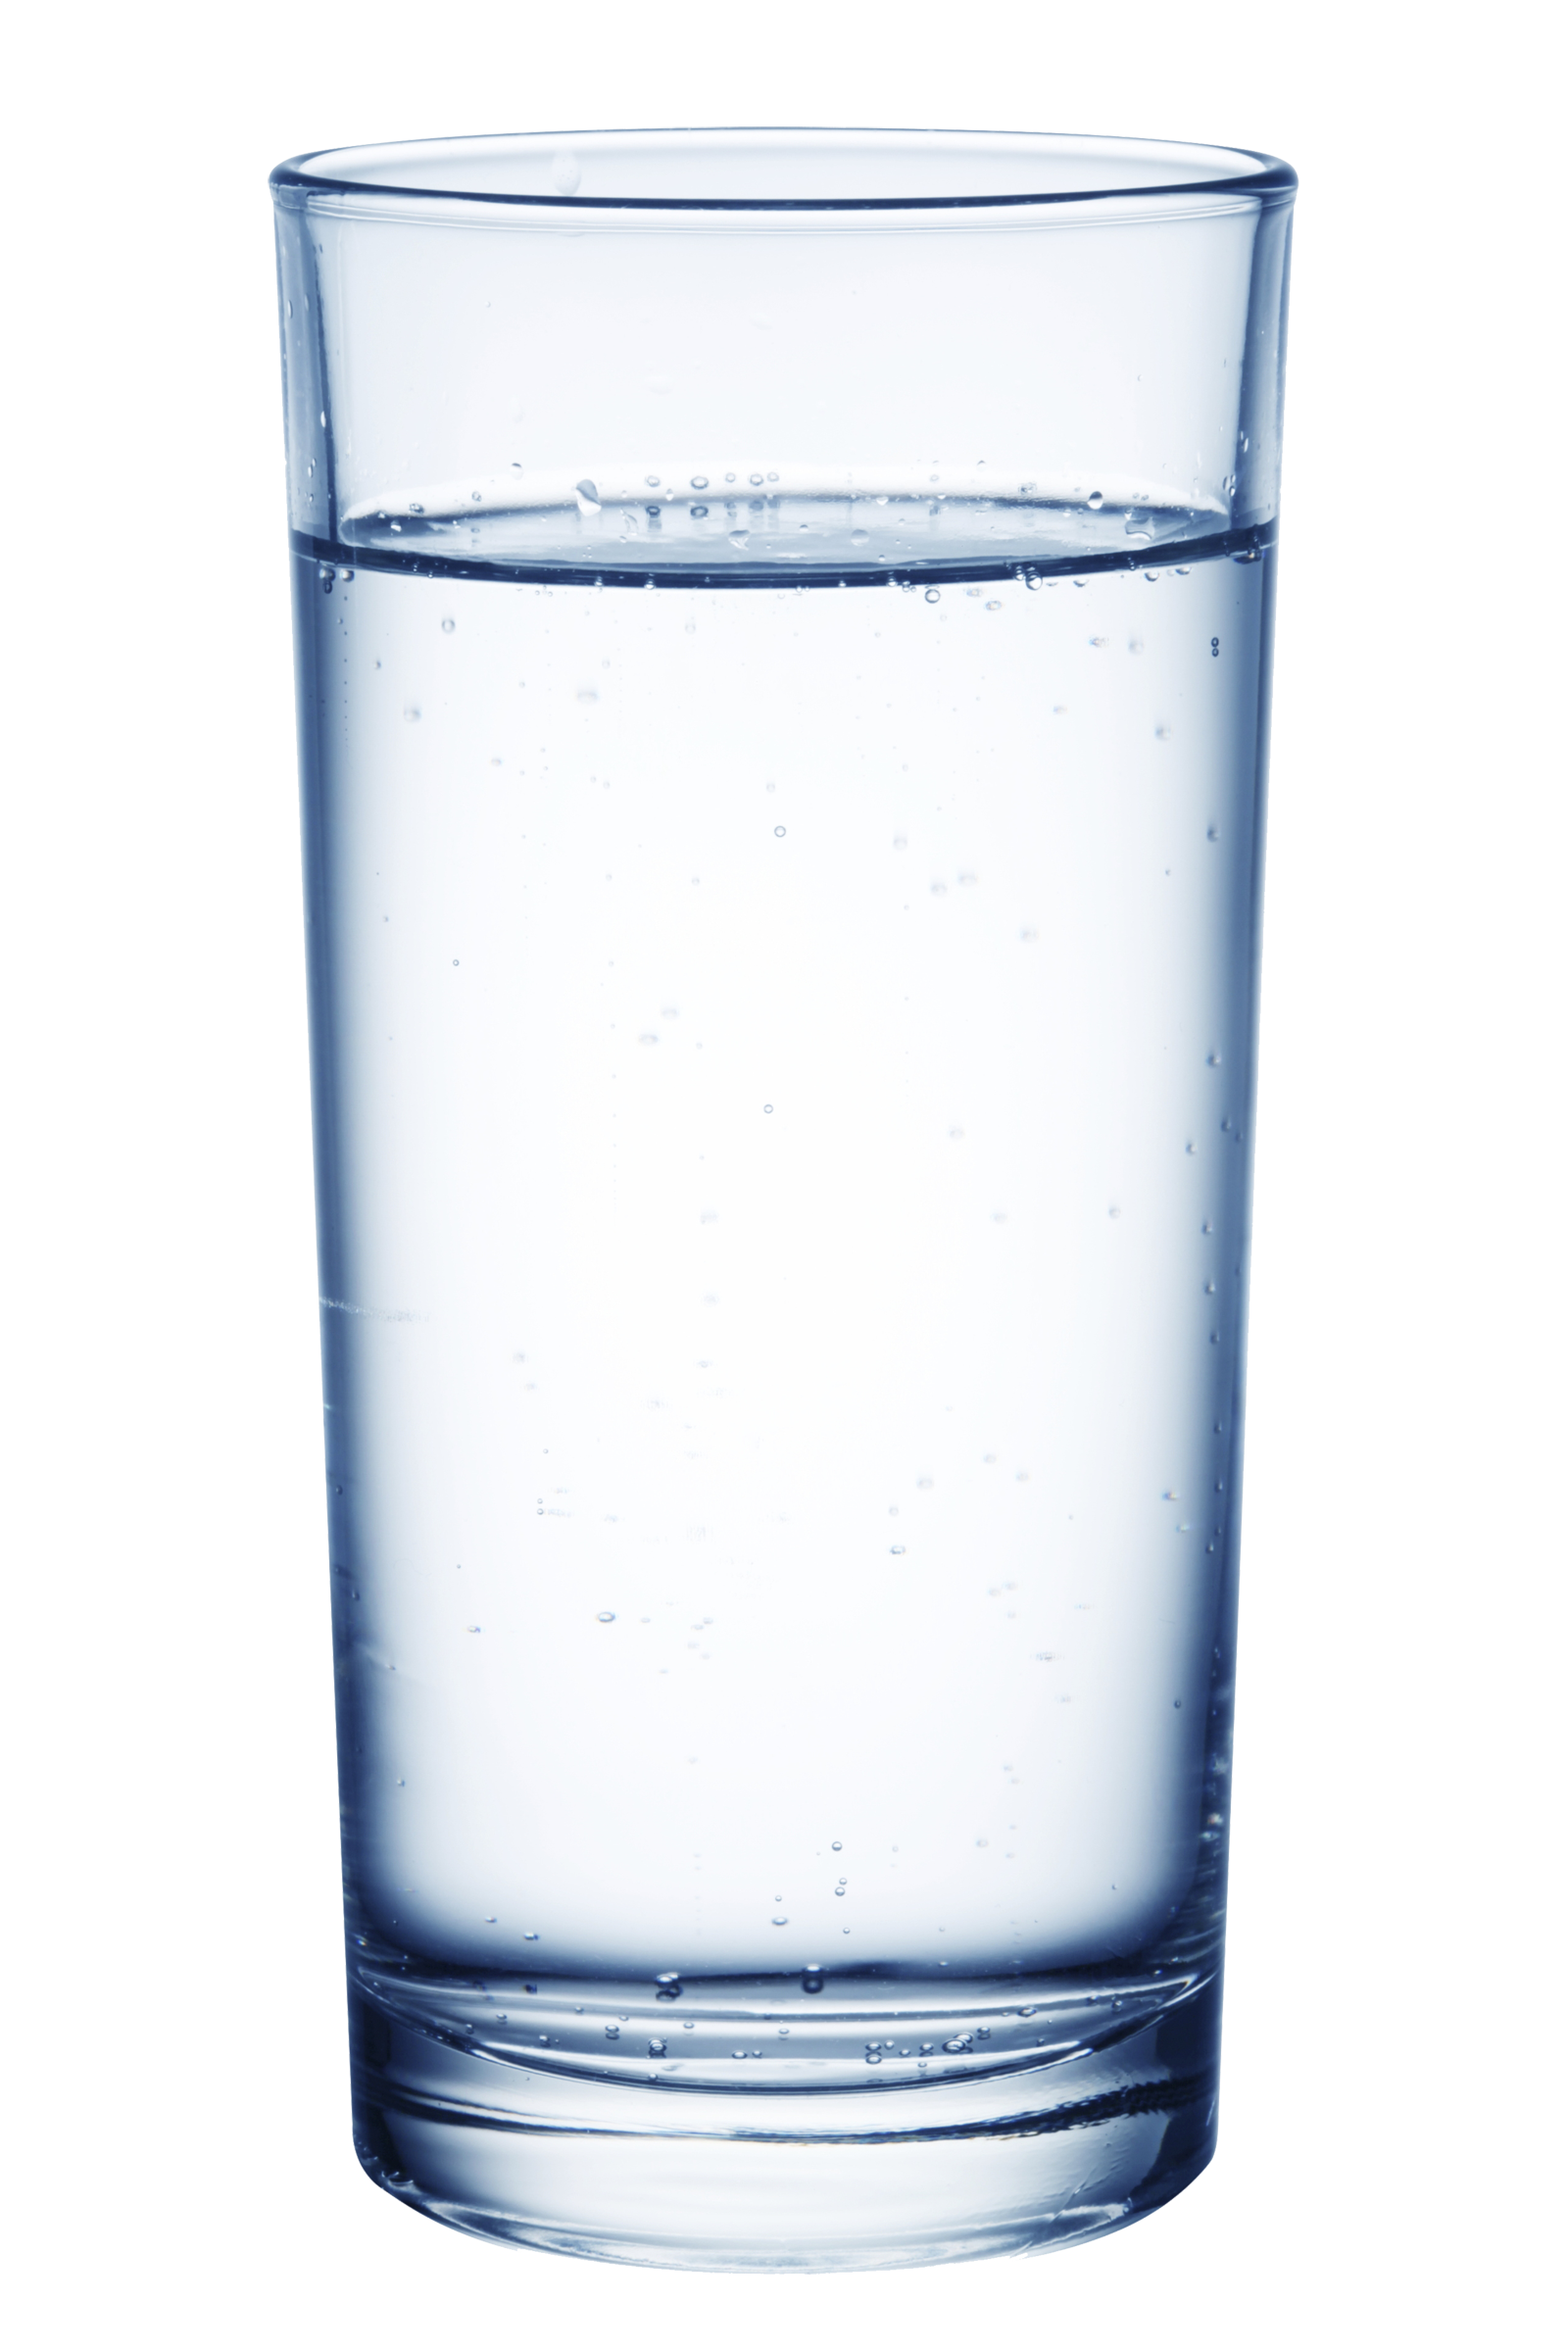 Worm clipart glass. Of water png hd